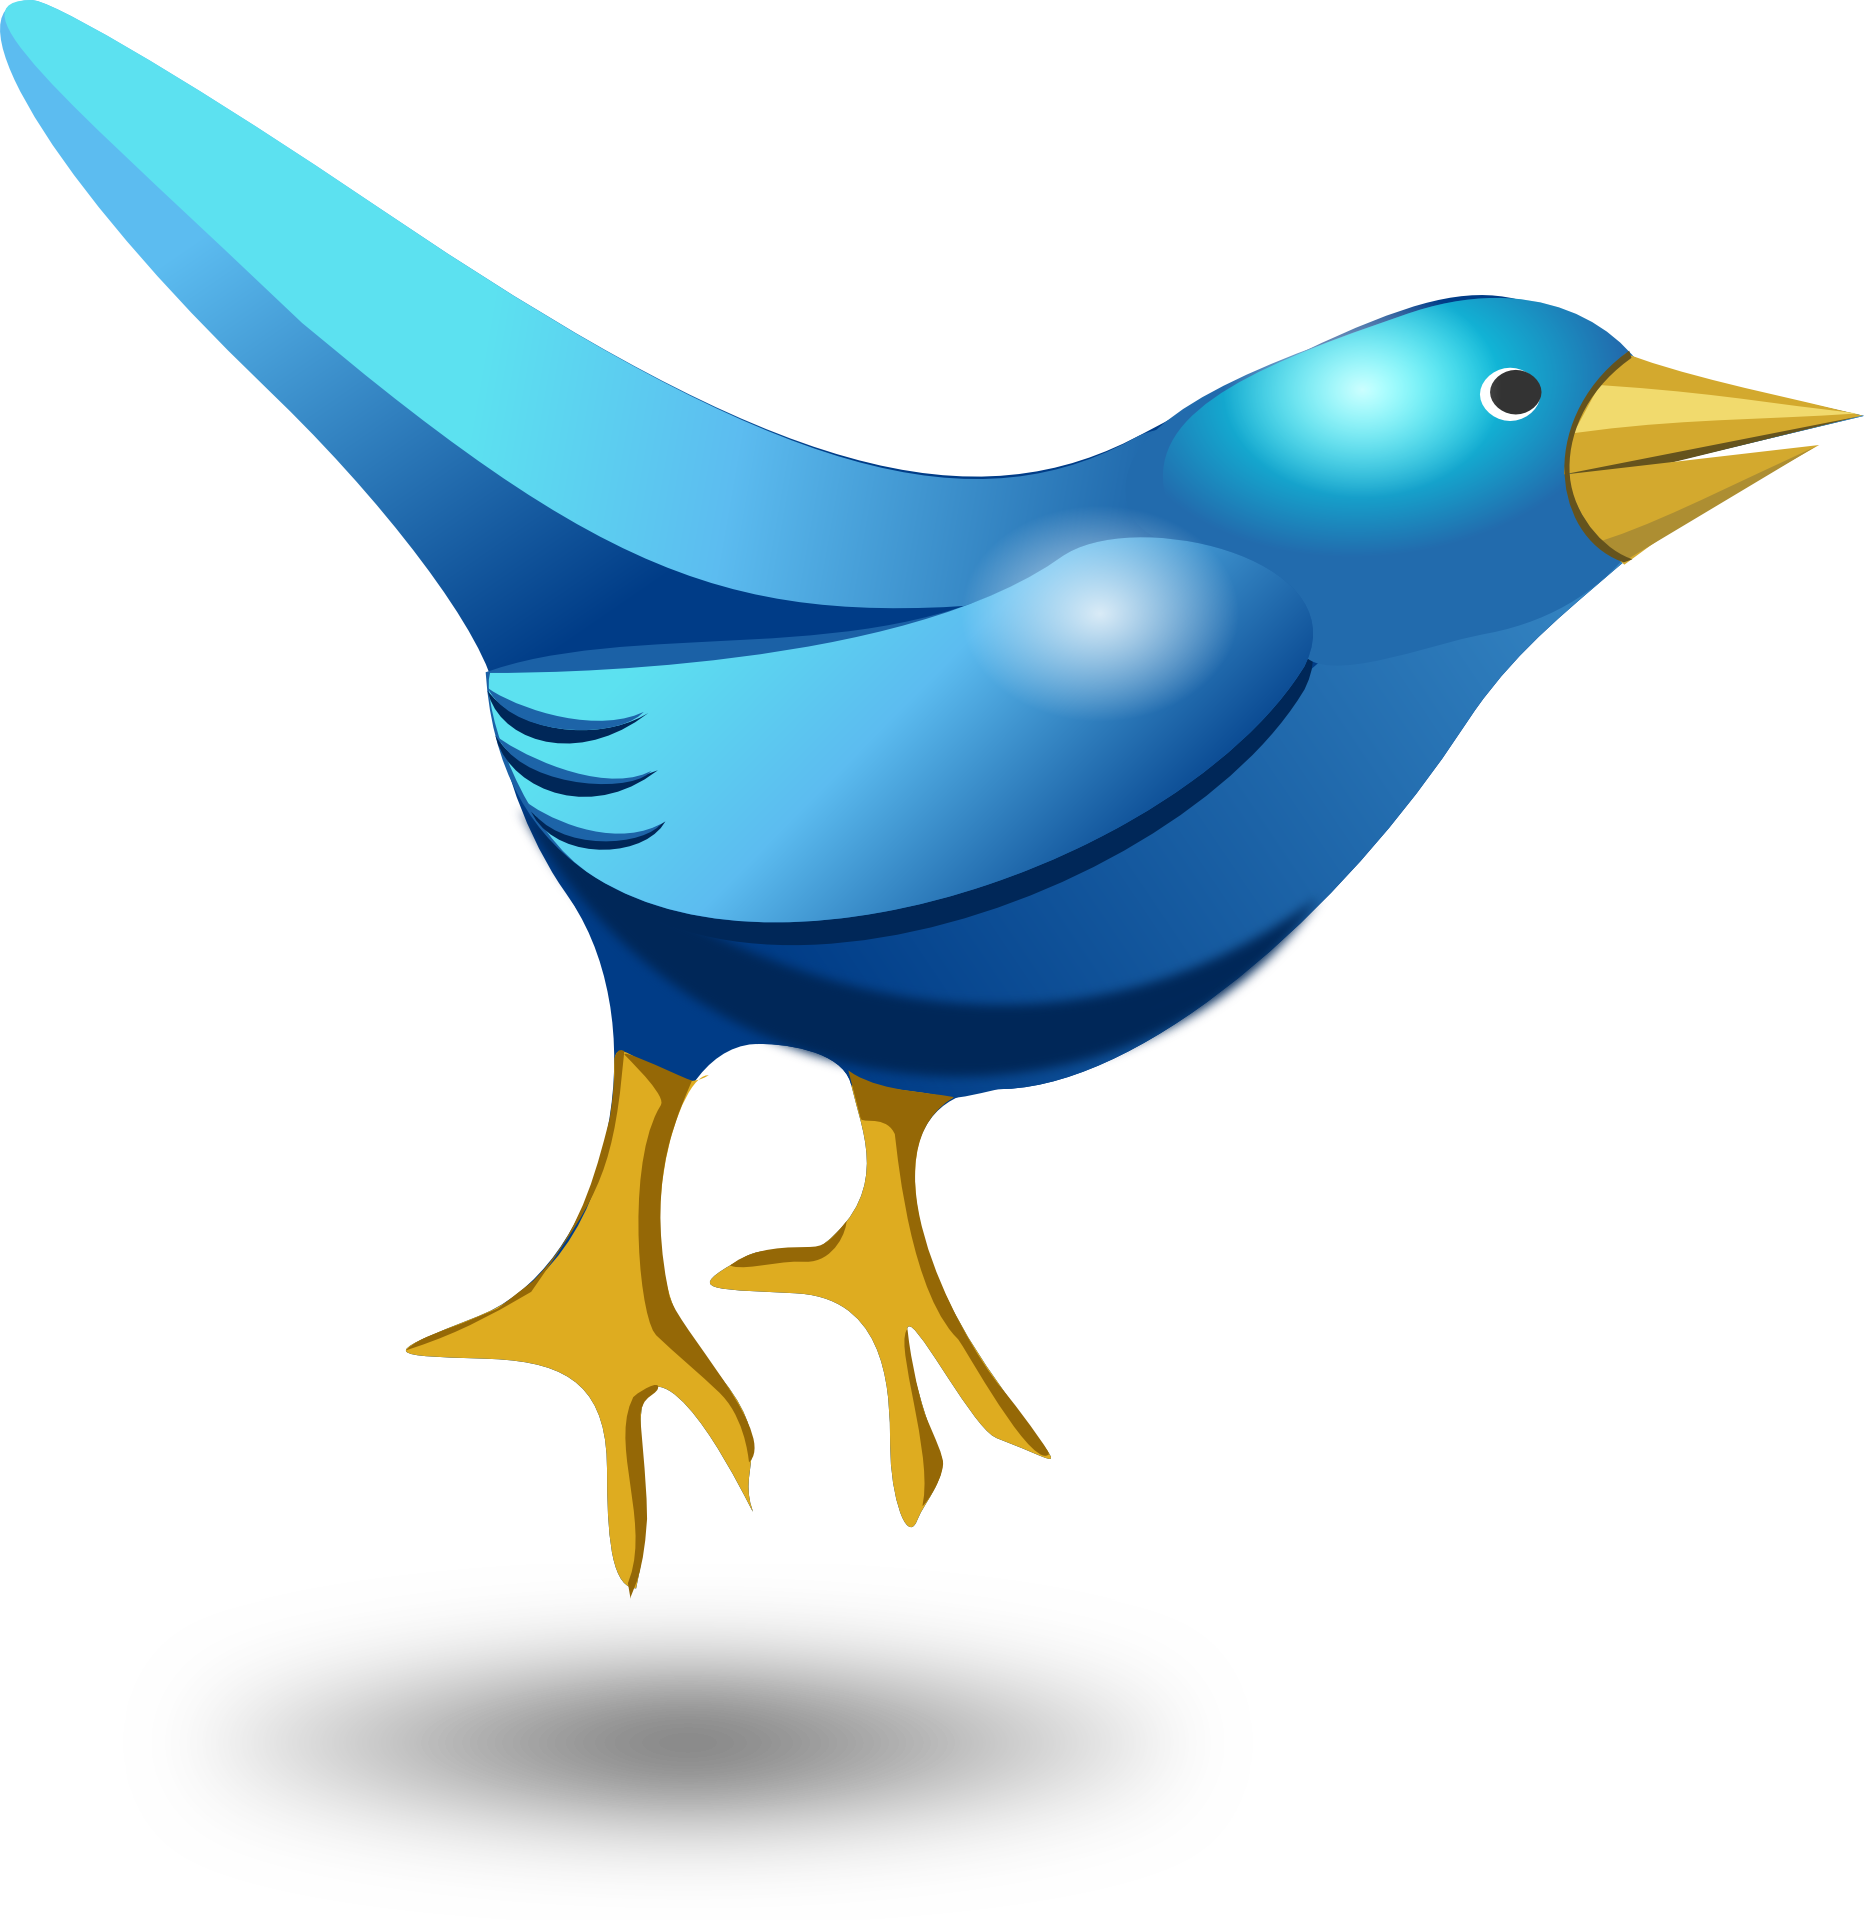 Vector psd bird. Blue cartoon symbol of